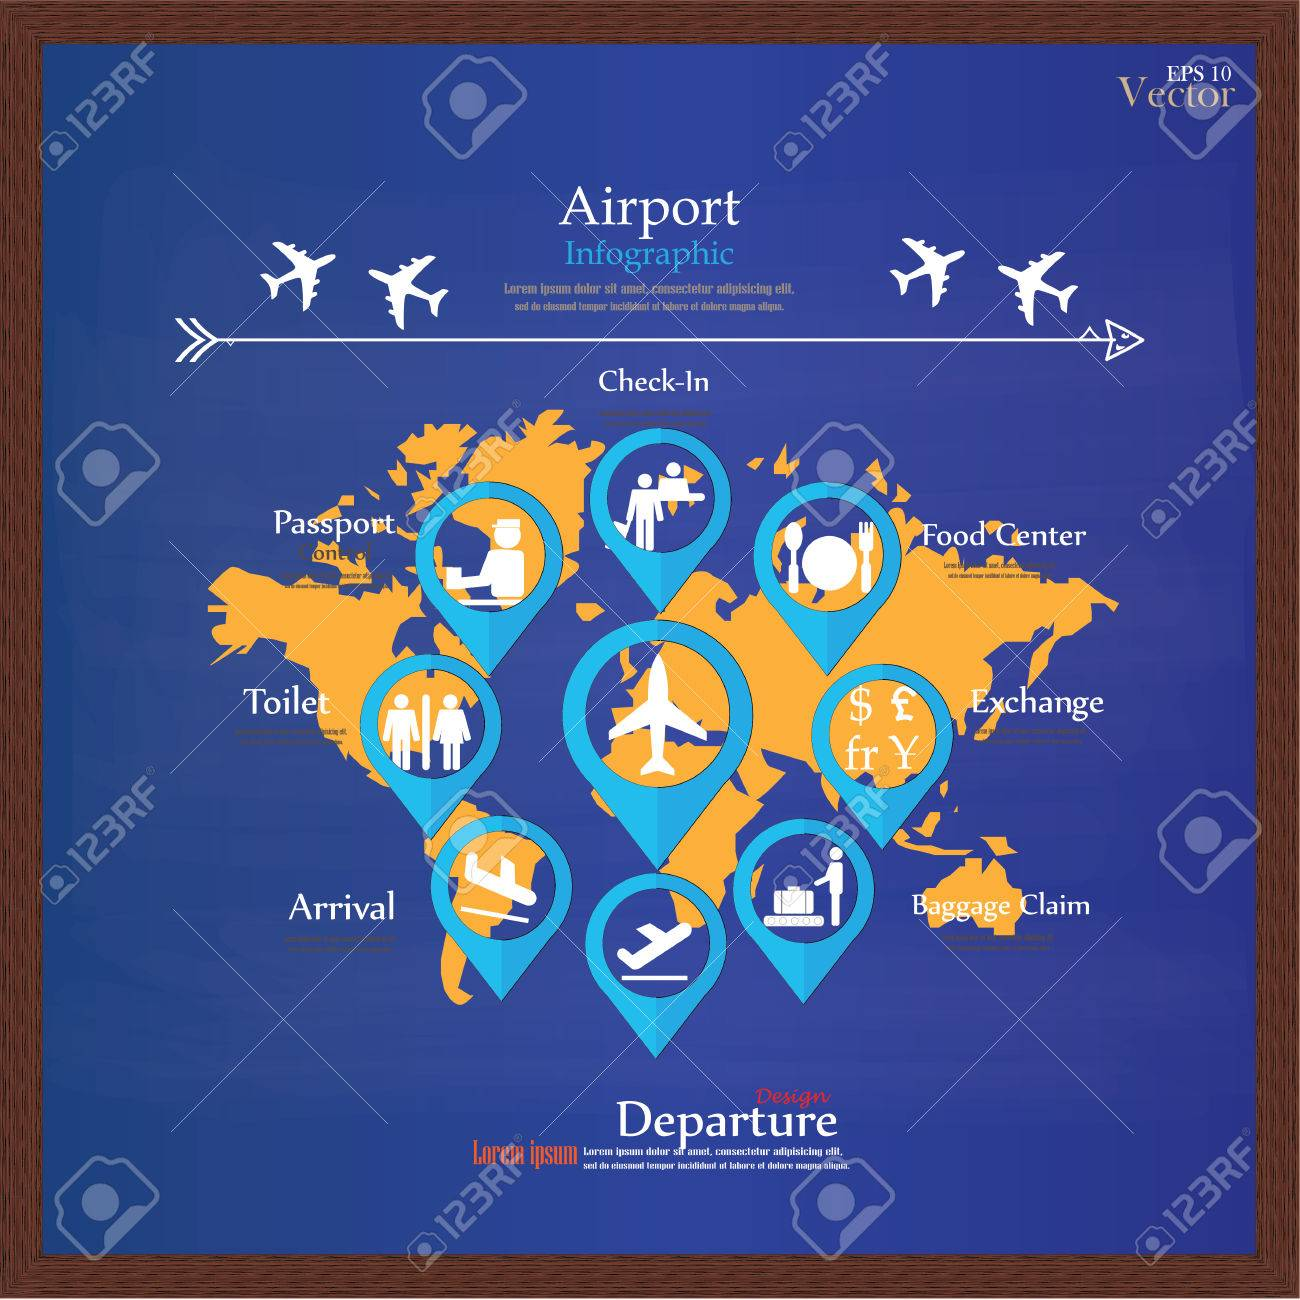 Airport business infographic presentation template concept design airport business infographic presentation template concept design on world map and airport service iconsrport gumiabroncs Images